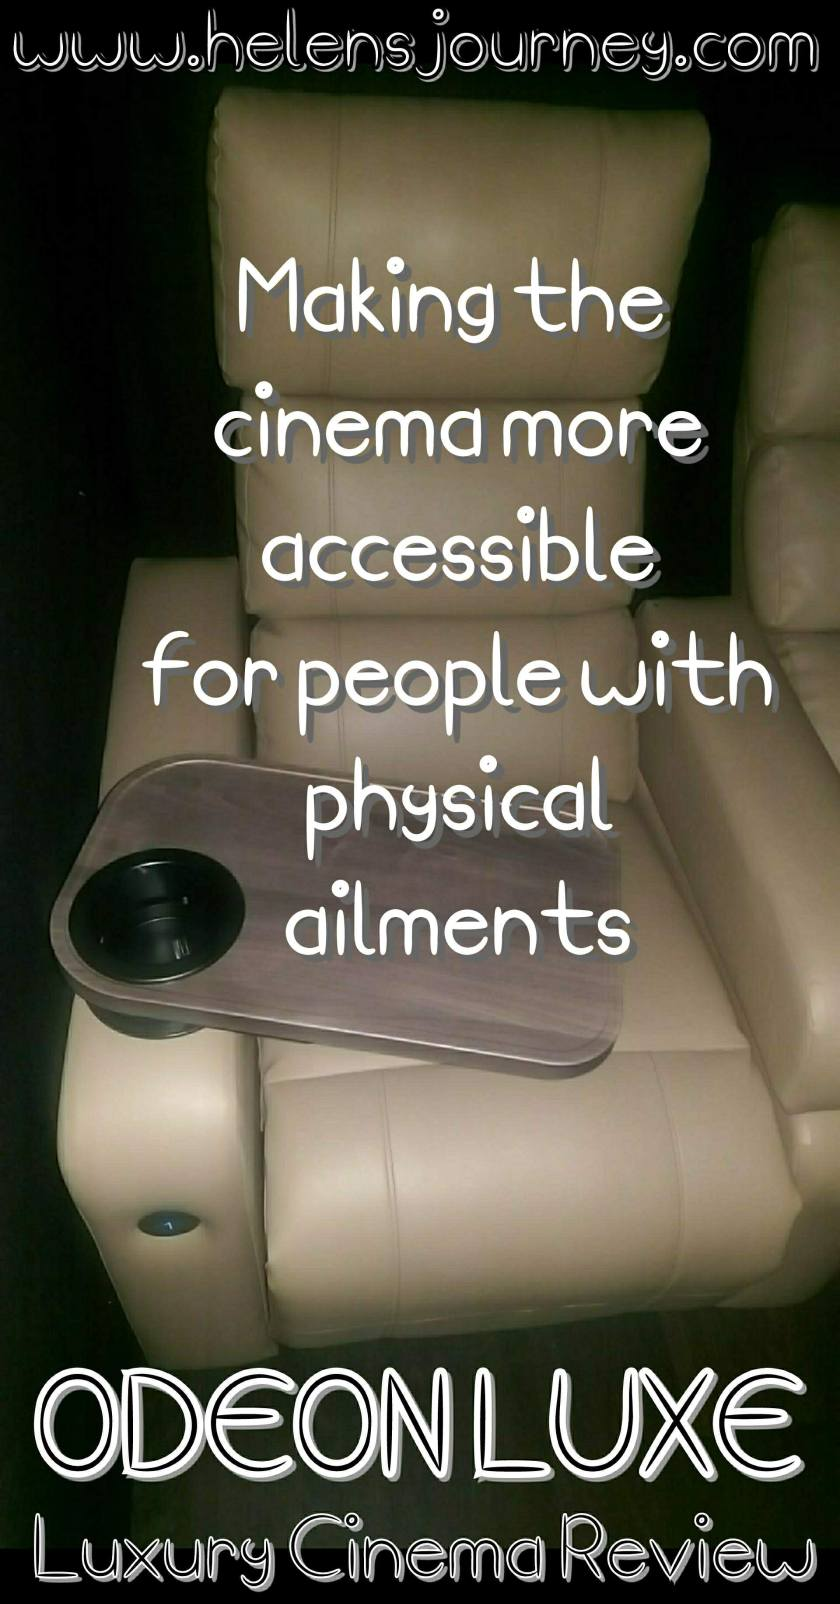 making films more accessible for people with physical ailments. review of odeon luxe, luxury cinema by Helen's Journey Blog www.helensjourney.com